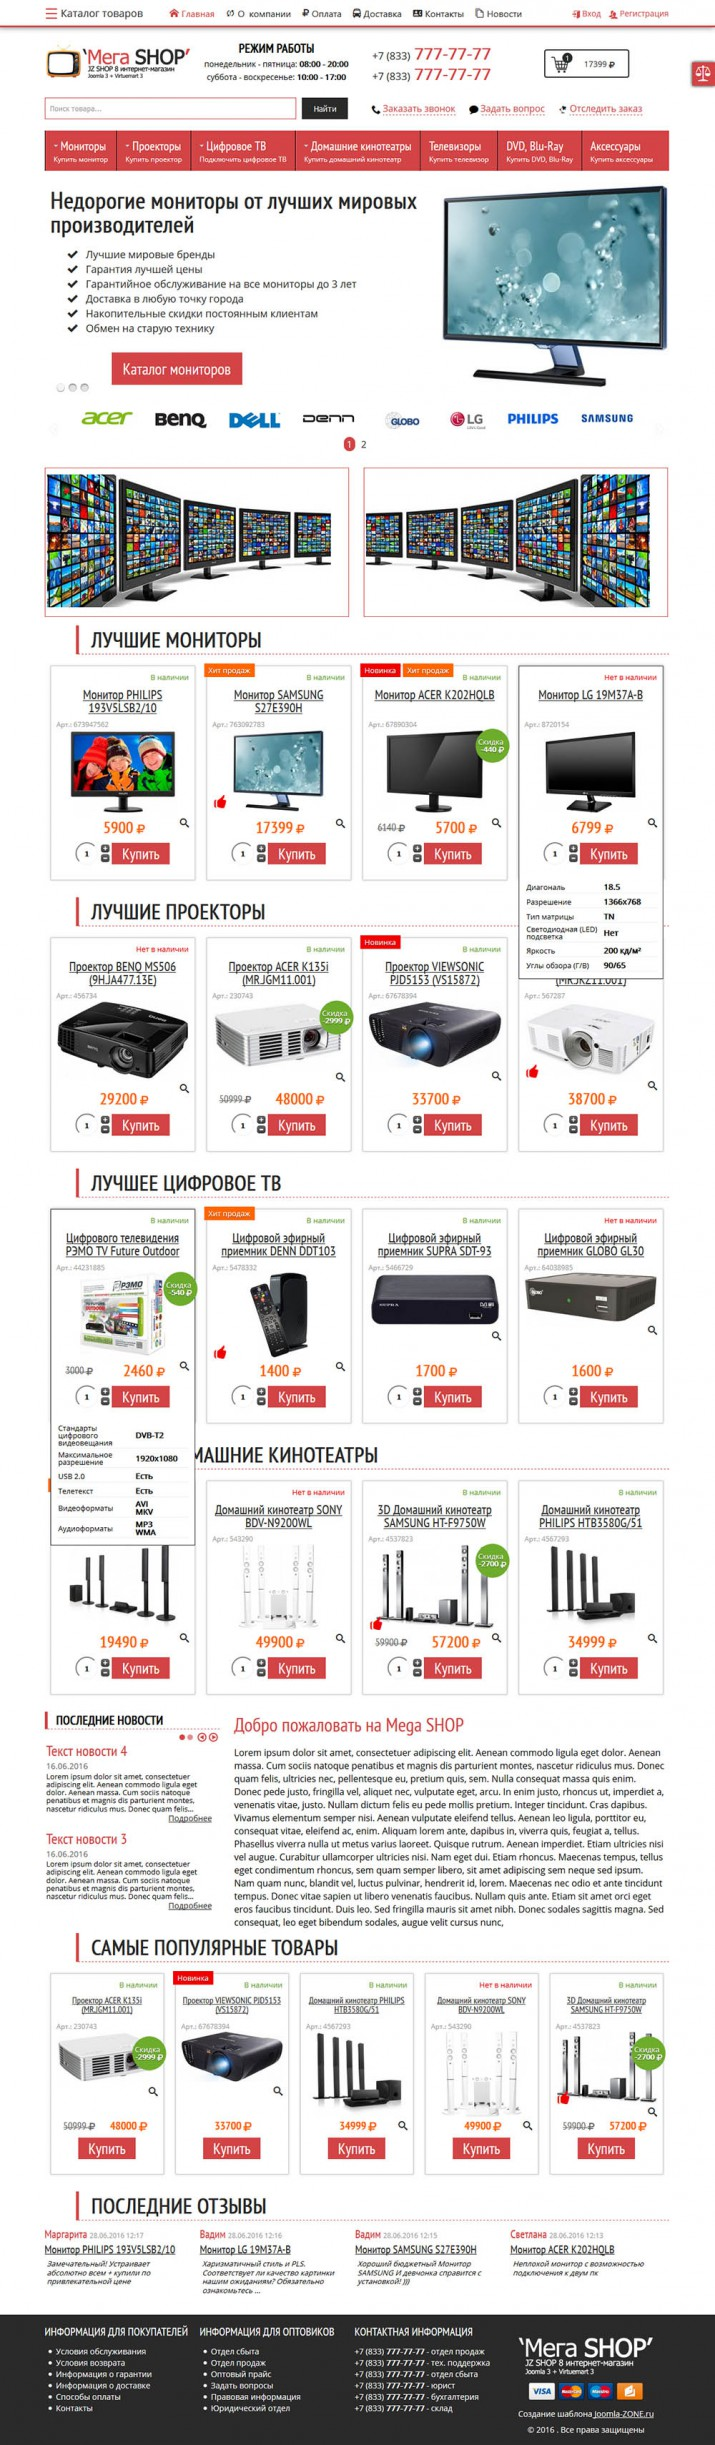 Интернет-магазин MegaSHOP (Joomla+Virtuemart)